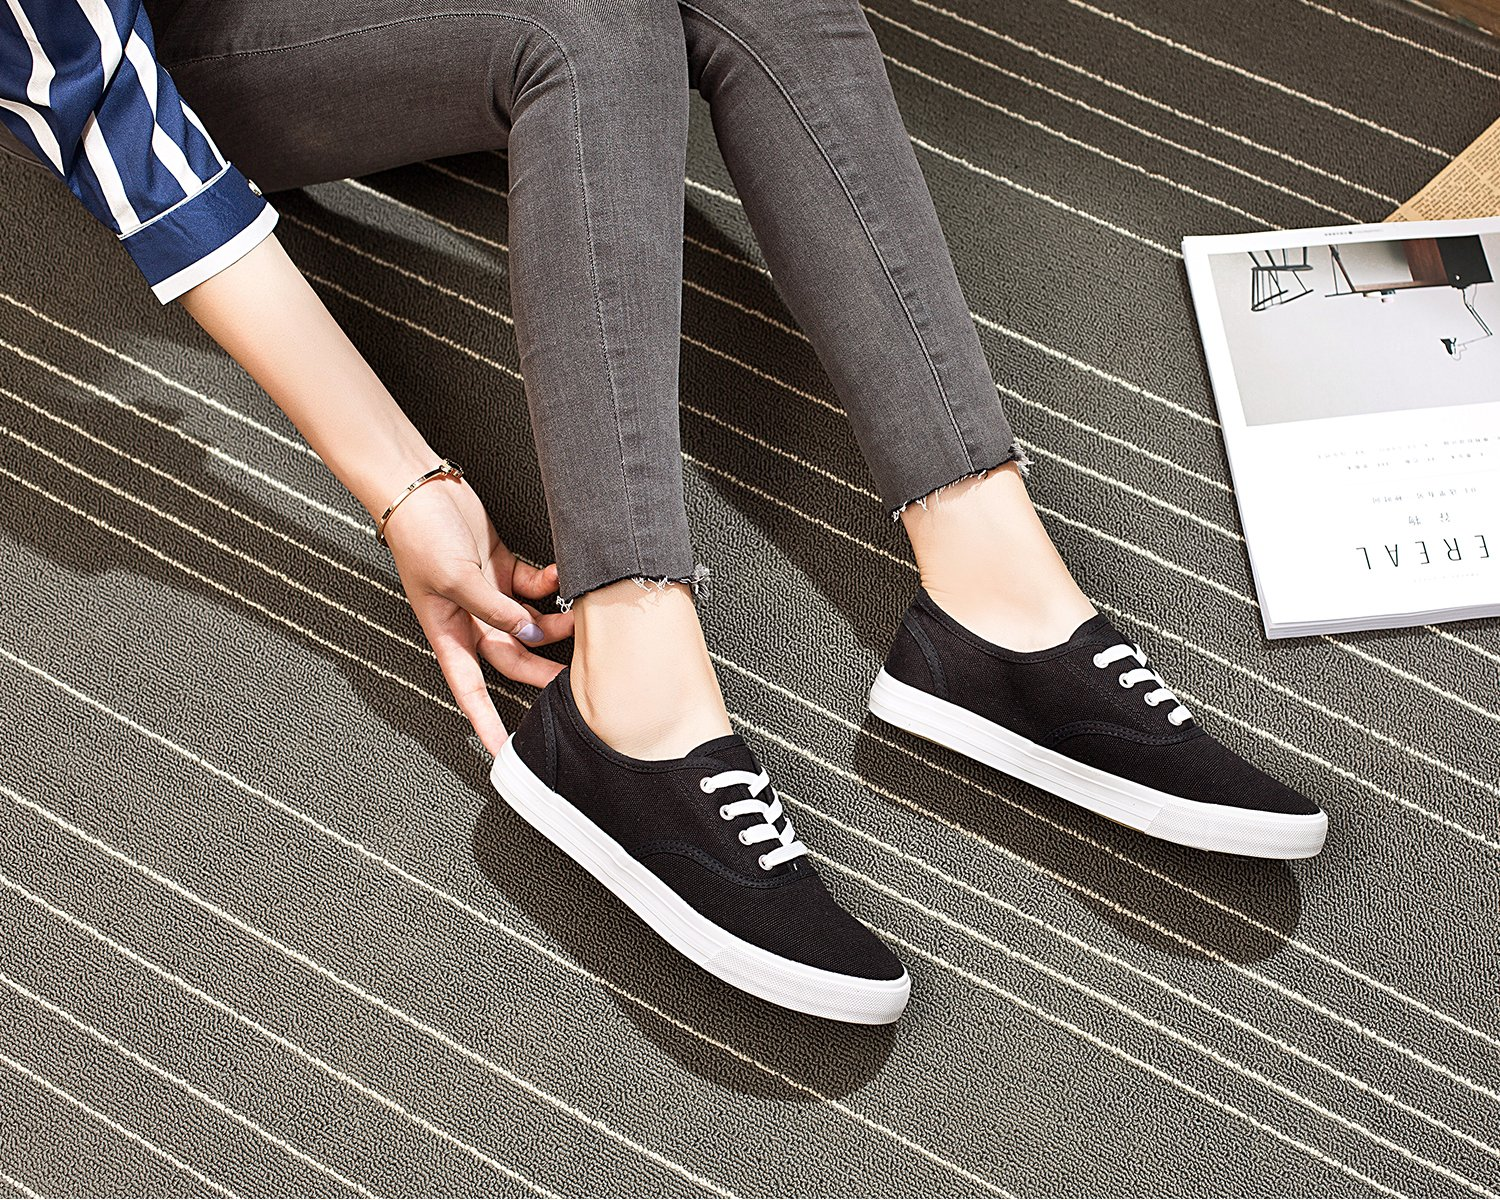 e2123b0d79551 ZGR Women's Slip On Canvas Loafer Shoes Fashion Low Cut Sneakers ...